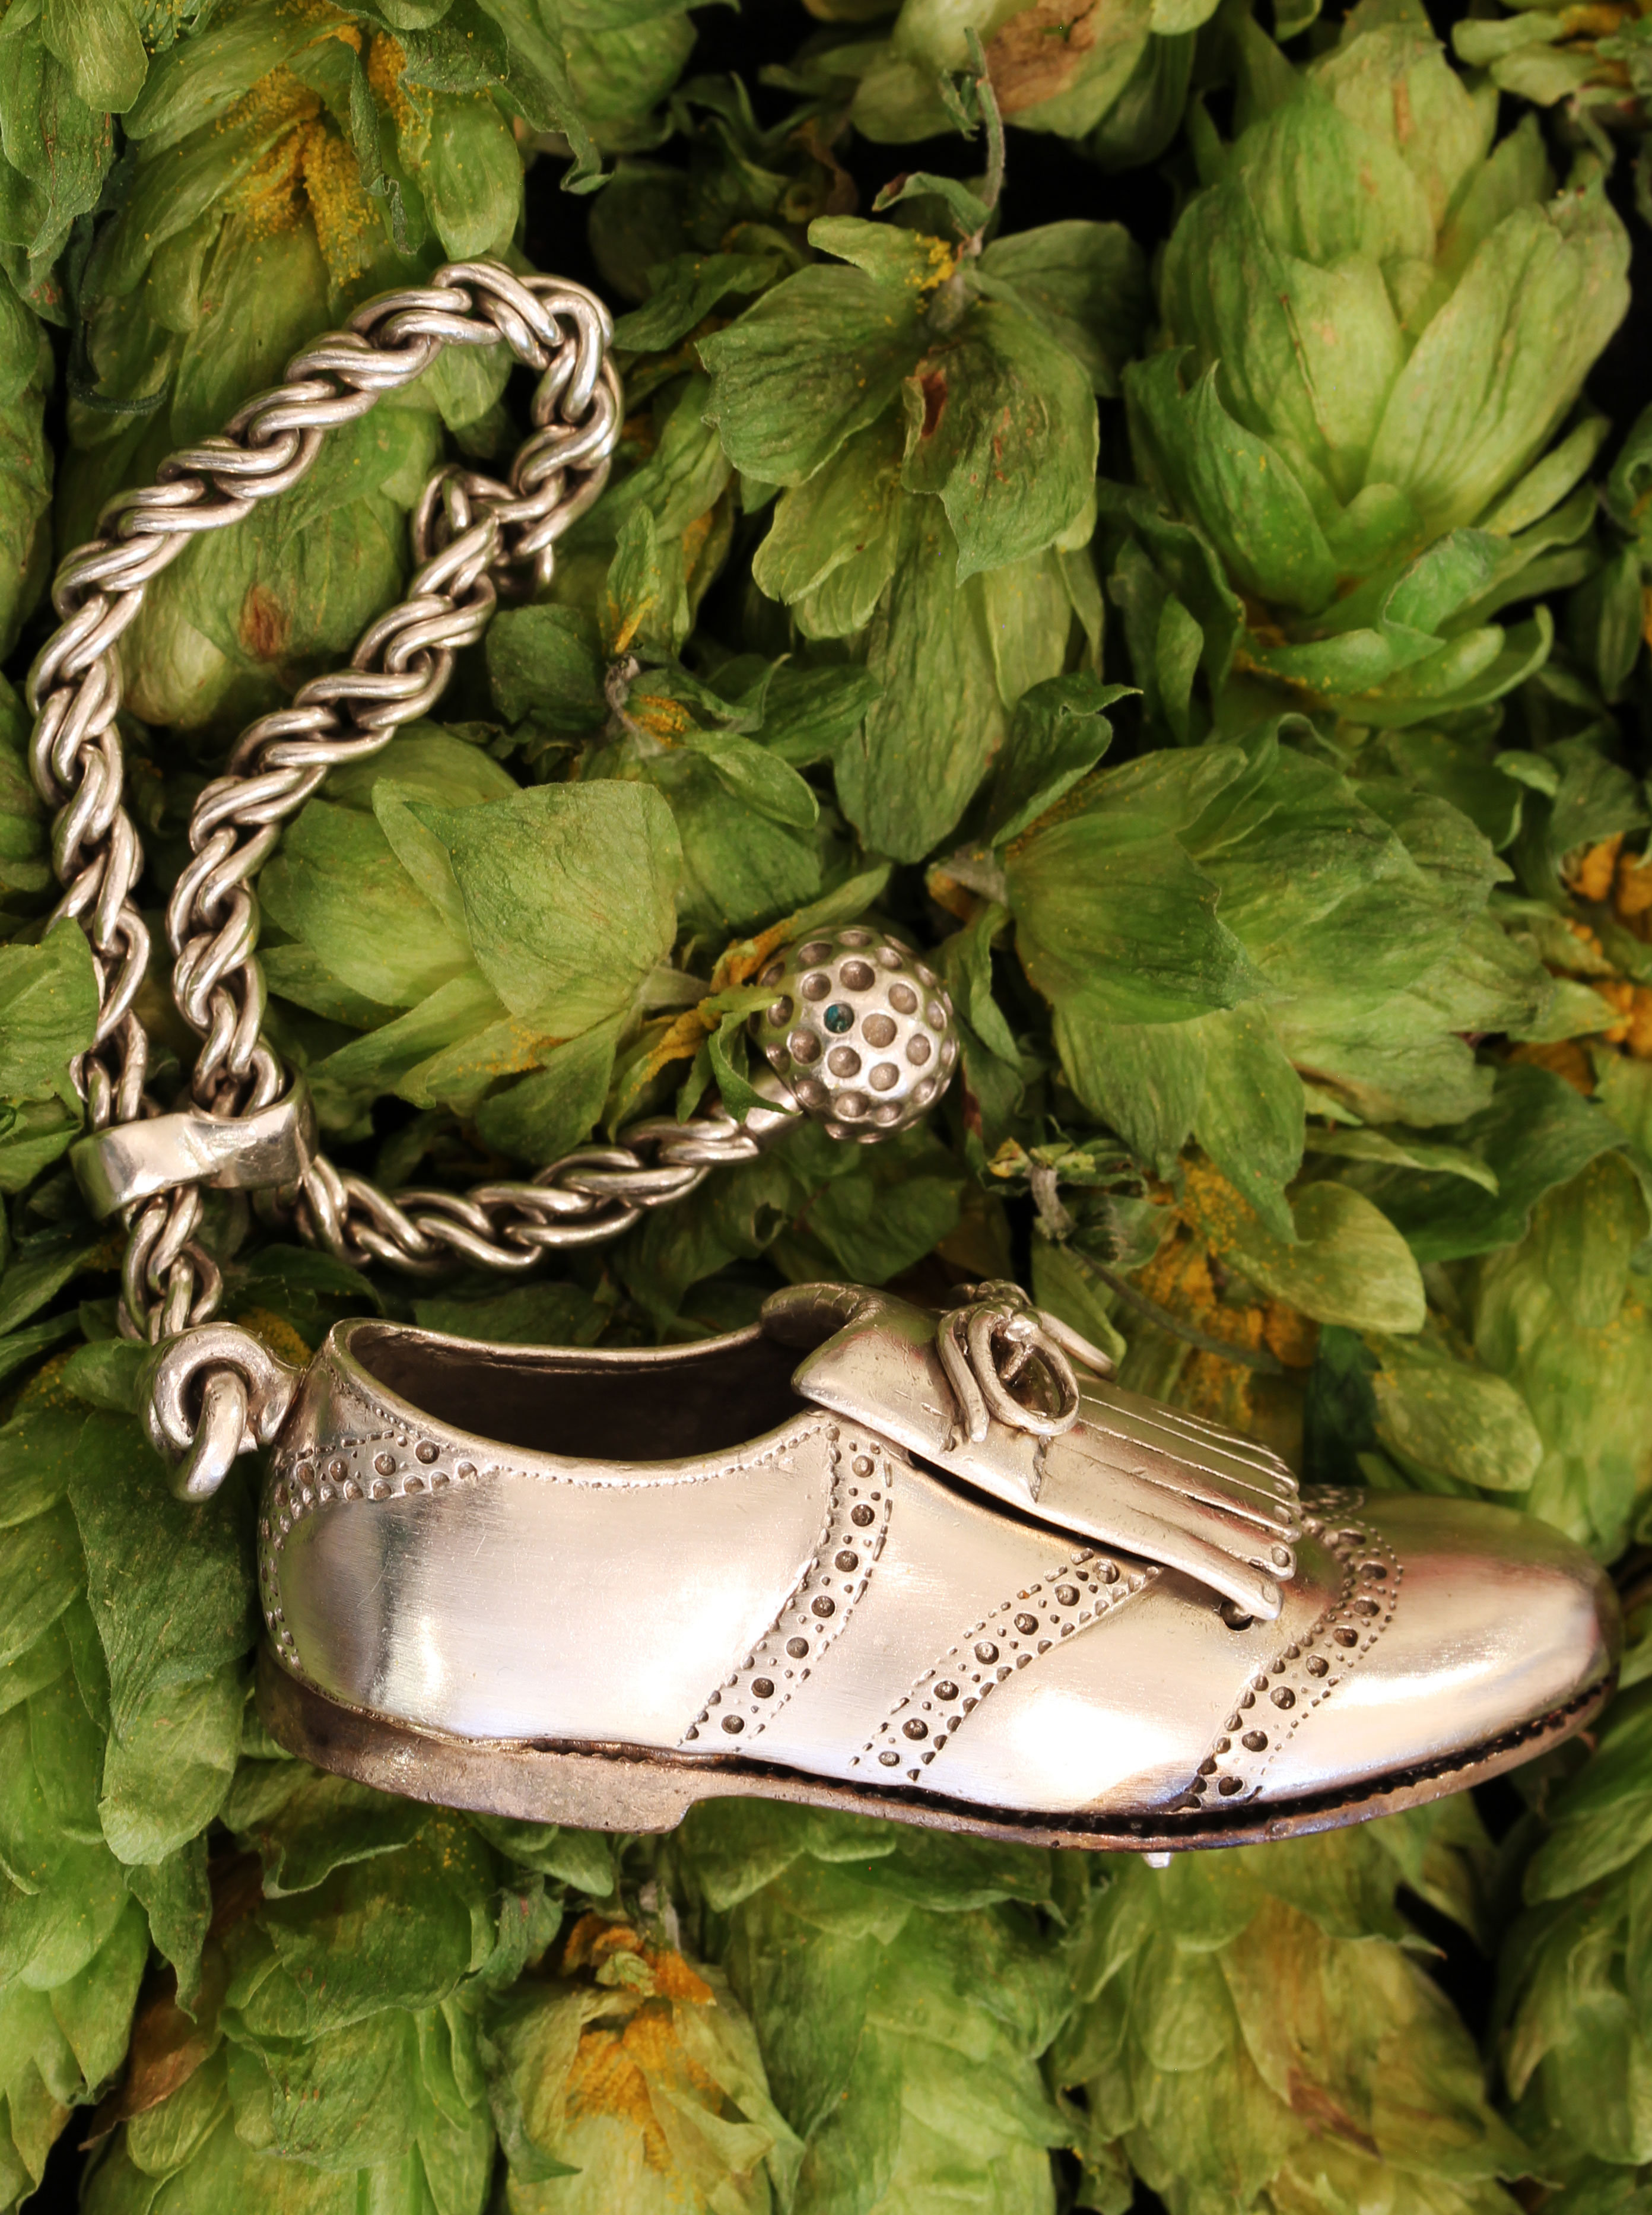 Silver key chain with golf shoe